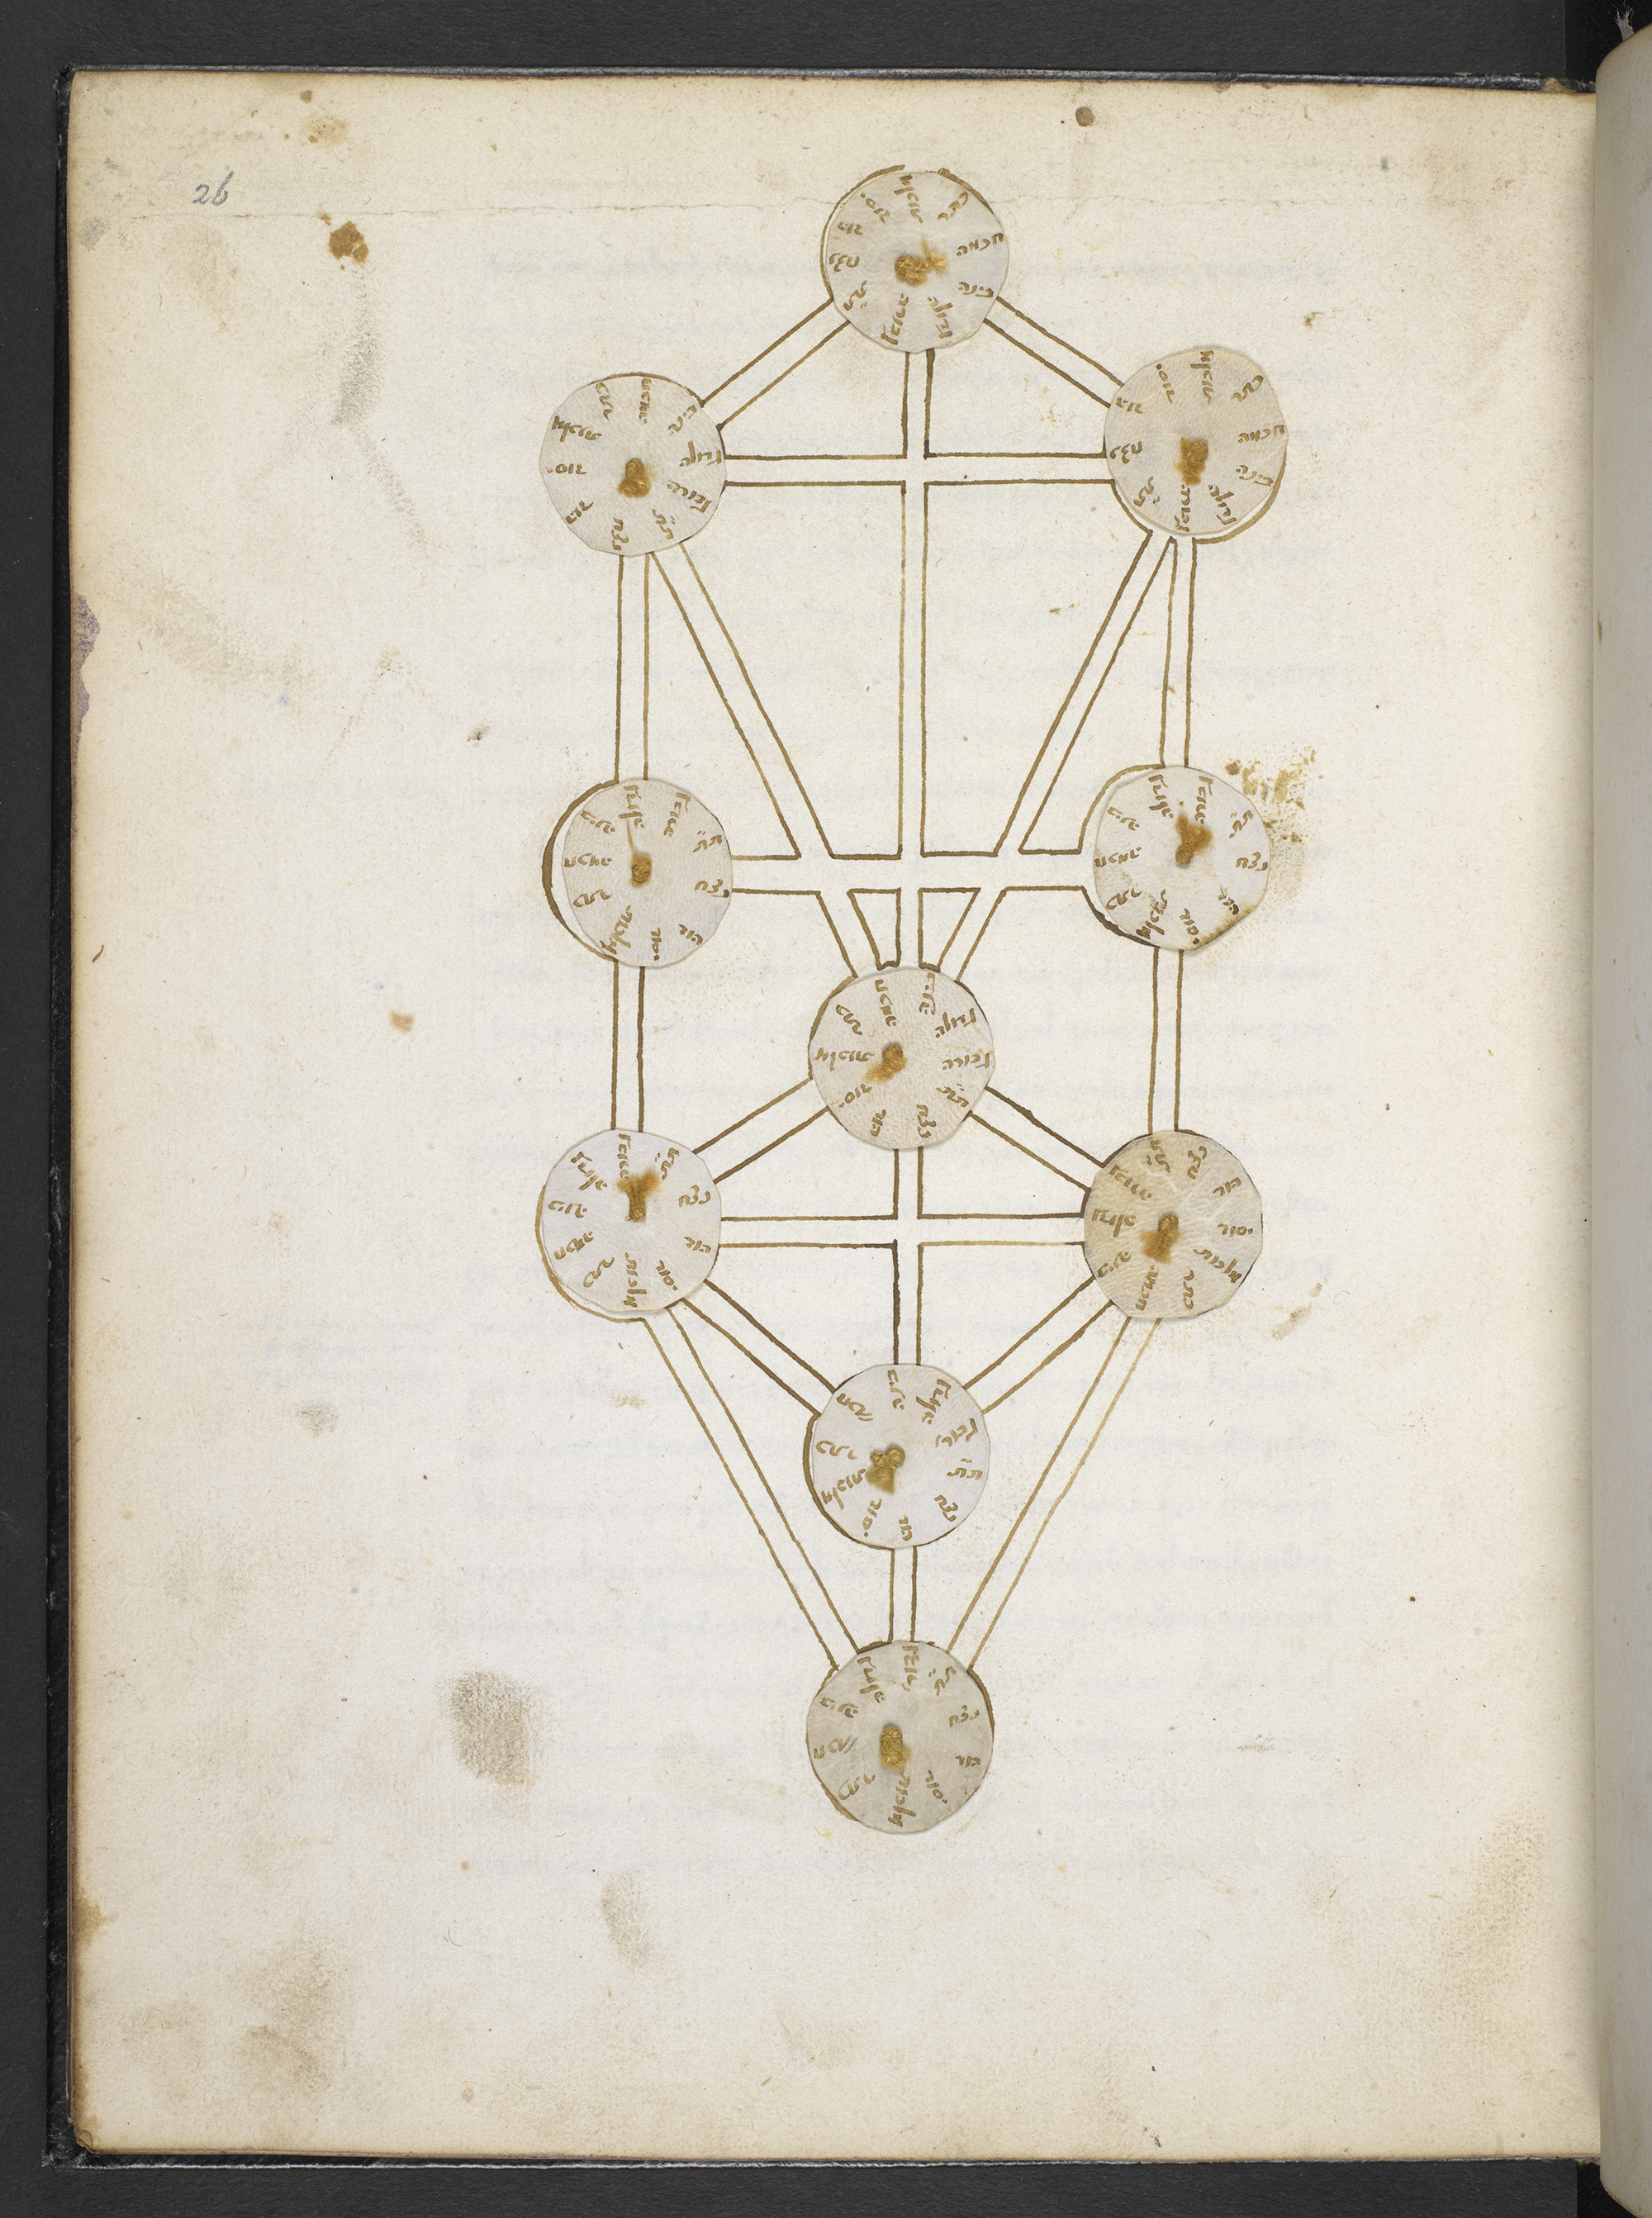 Arboreal diagram with rotating volvelles, Kabbalah: An abridgment of a kabbalistic treatise, Add MS 27091, Hebrew Manuscripts Digitisation Project, British Library